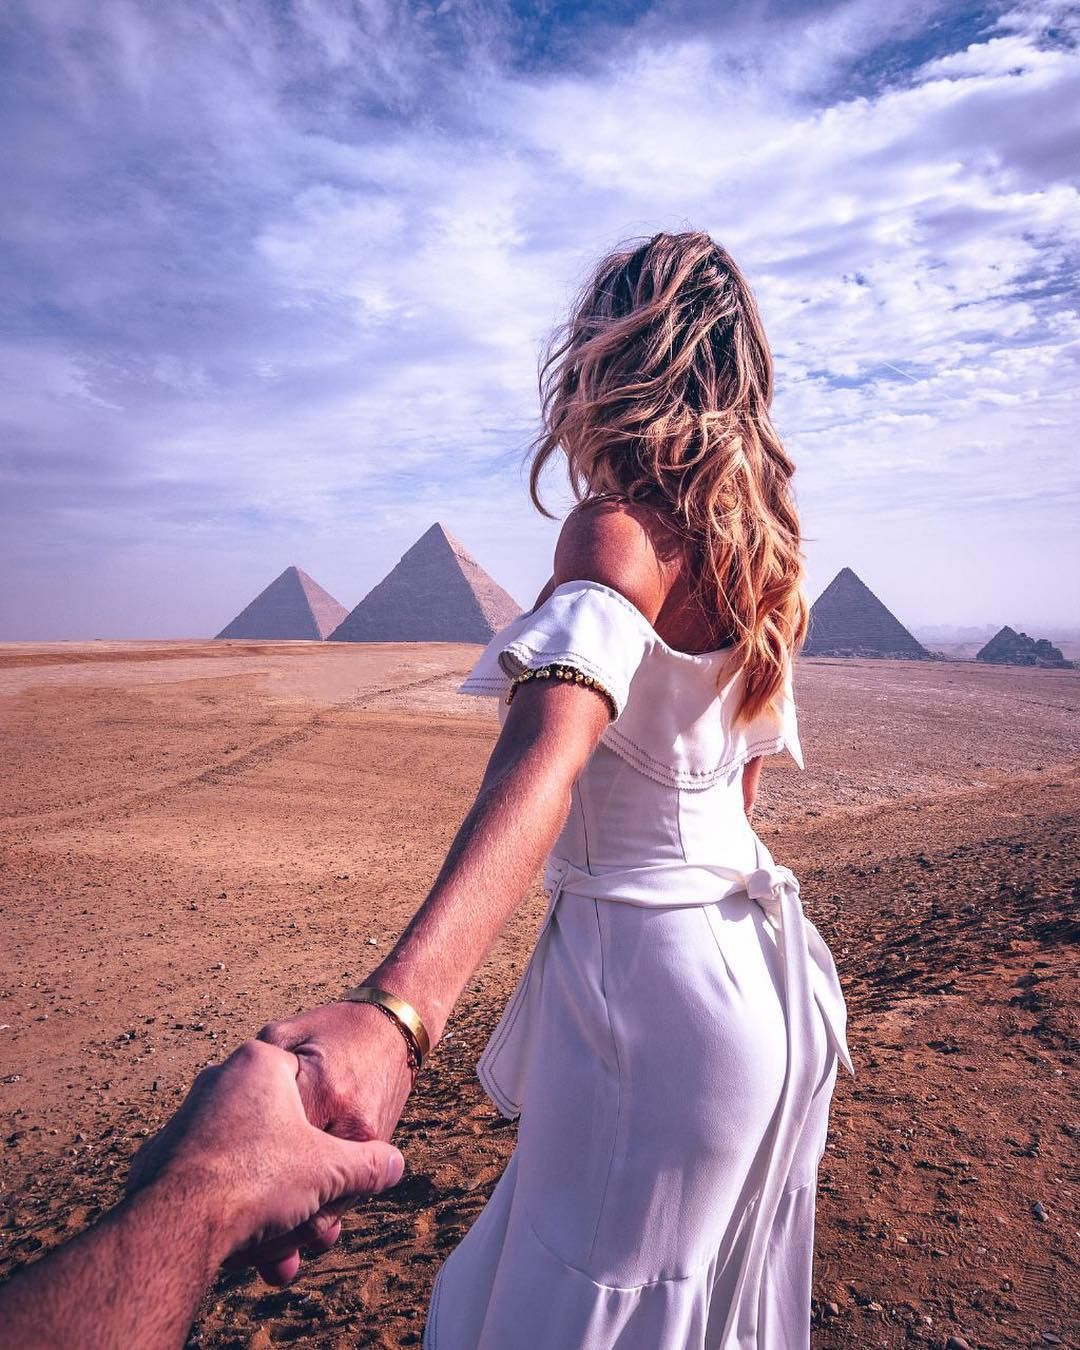 Egypt Tour Packages From Malaysia Egypt Tours From Malaysia Egypt Tours Egypt Visit Egypt